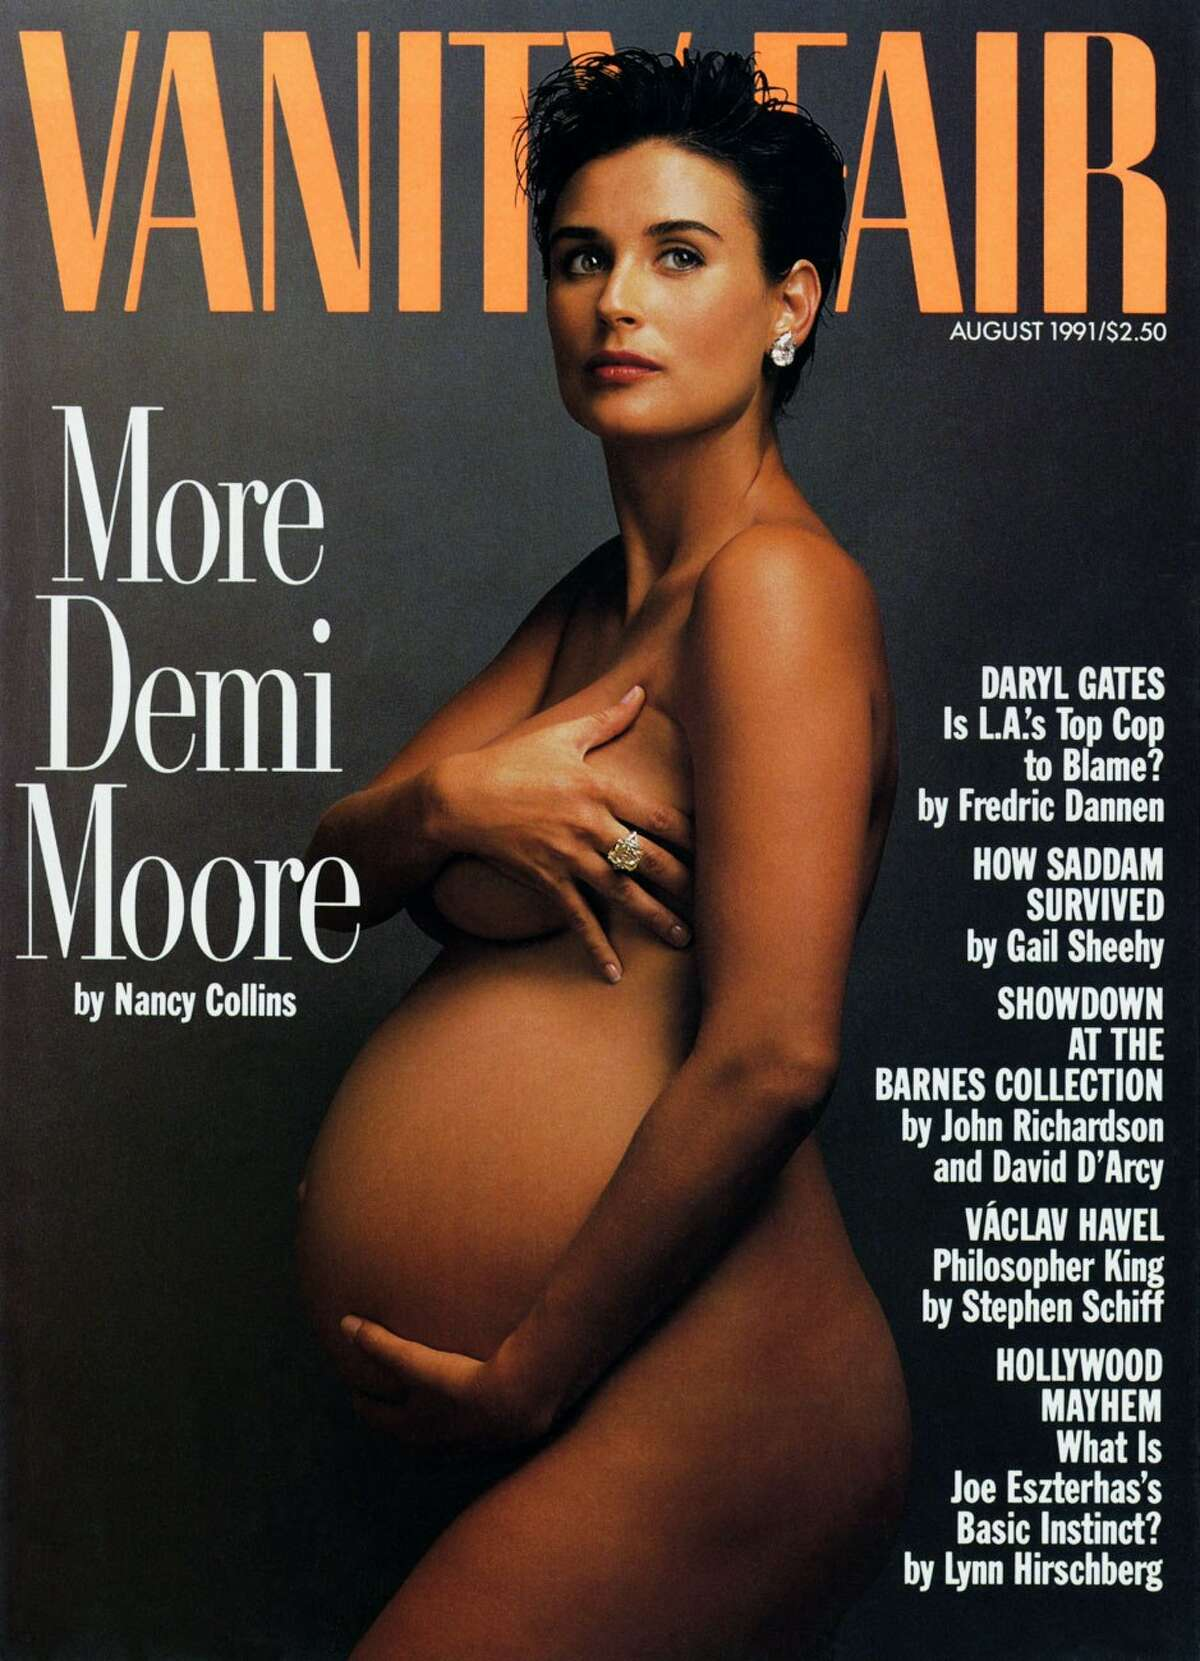 Demi Moore When Moore posed nude and seven months pregnant on the cover of Vanity Fair in 1991 it was shocking to see a sex-symbol like Demi pregnant.